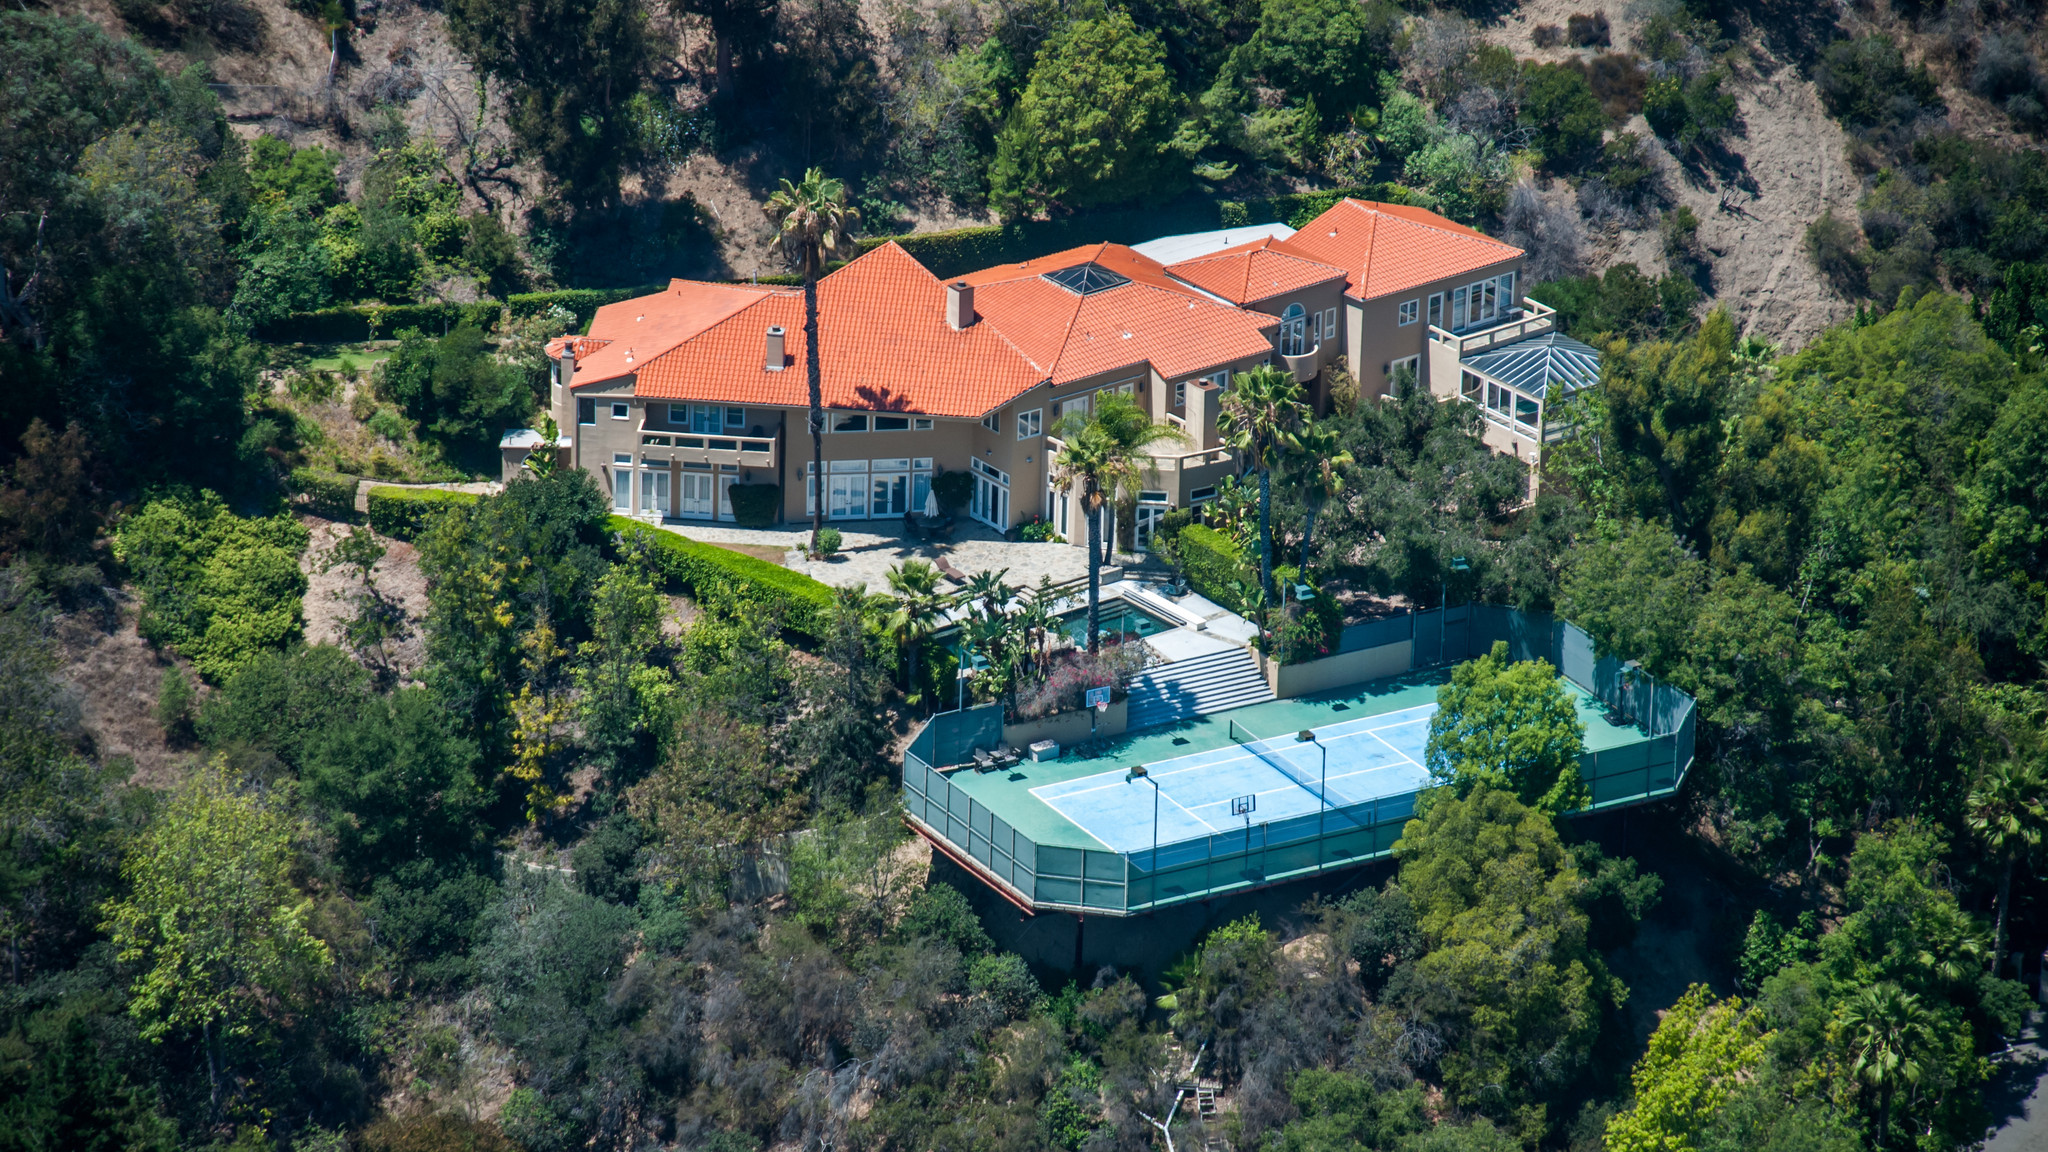 Oscar de la Hoya house in Los Angeles